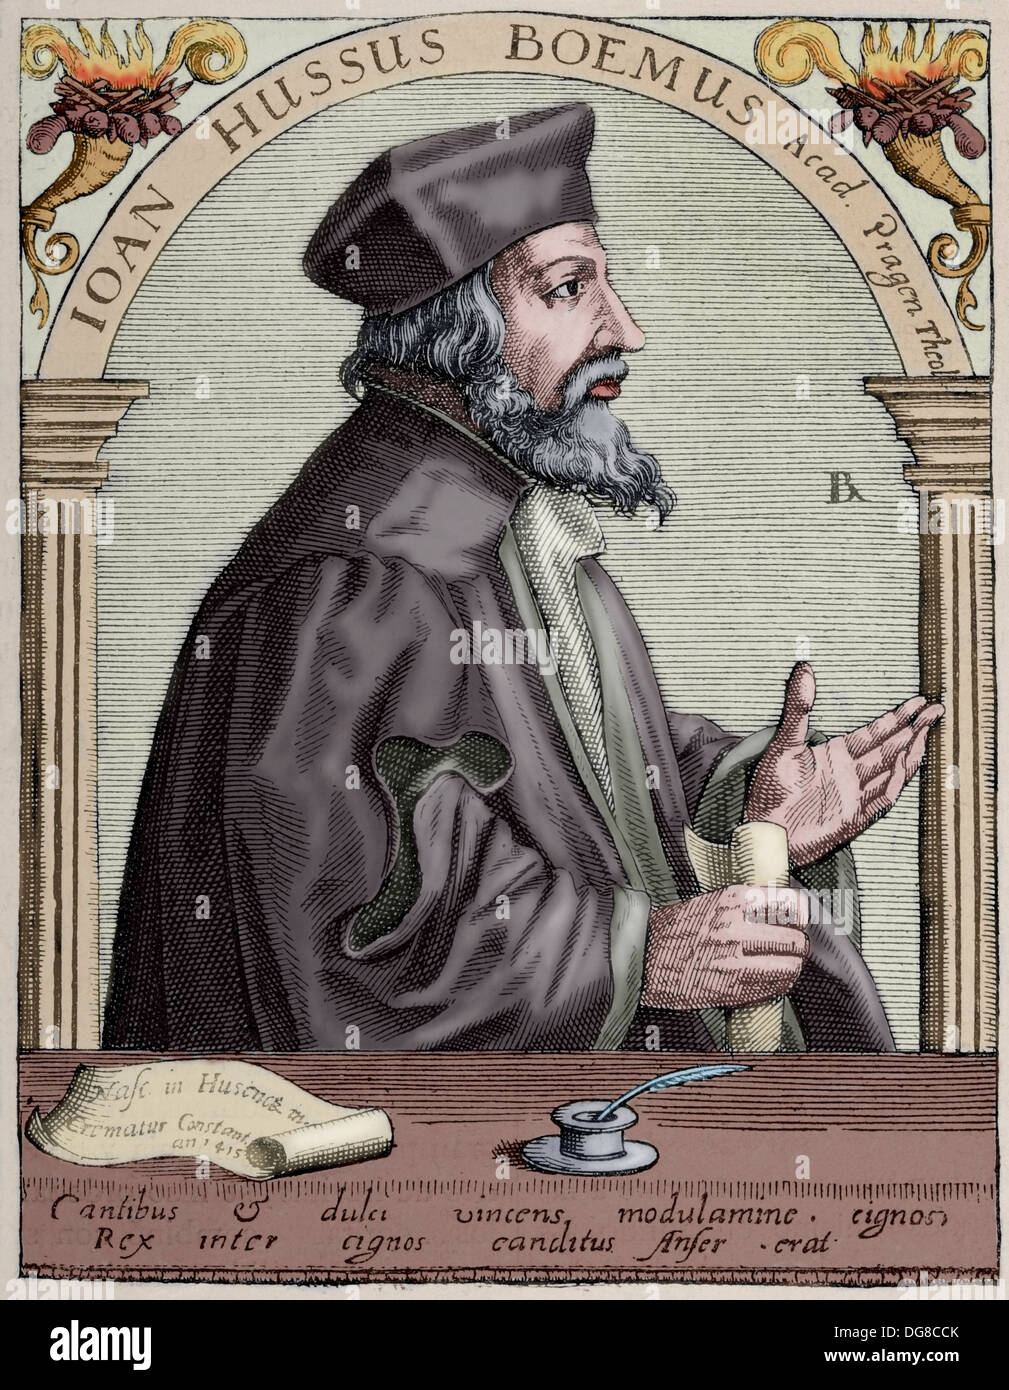 Jan Hus (1369-1415). Czech priest, philosopher and reformer. Engraving. Colored. - Stock Image